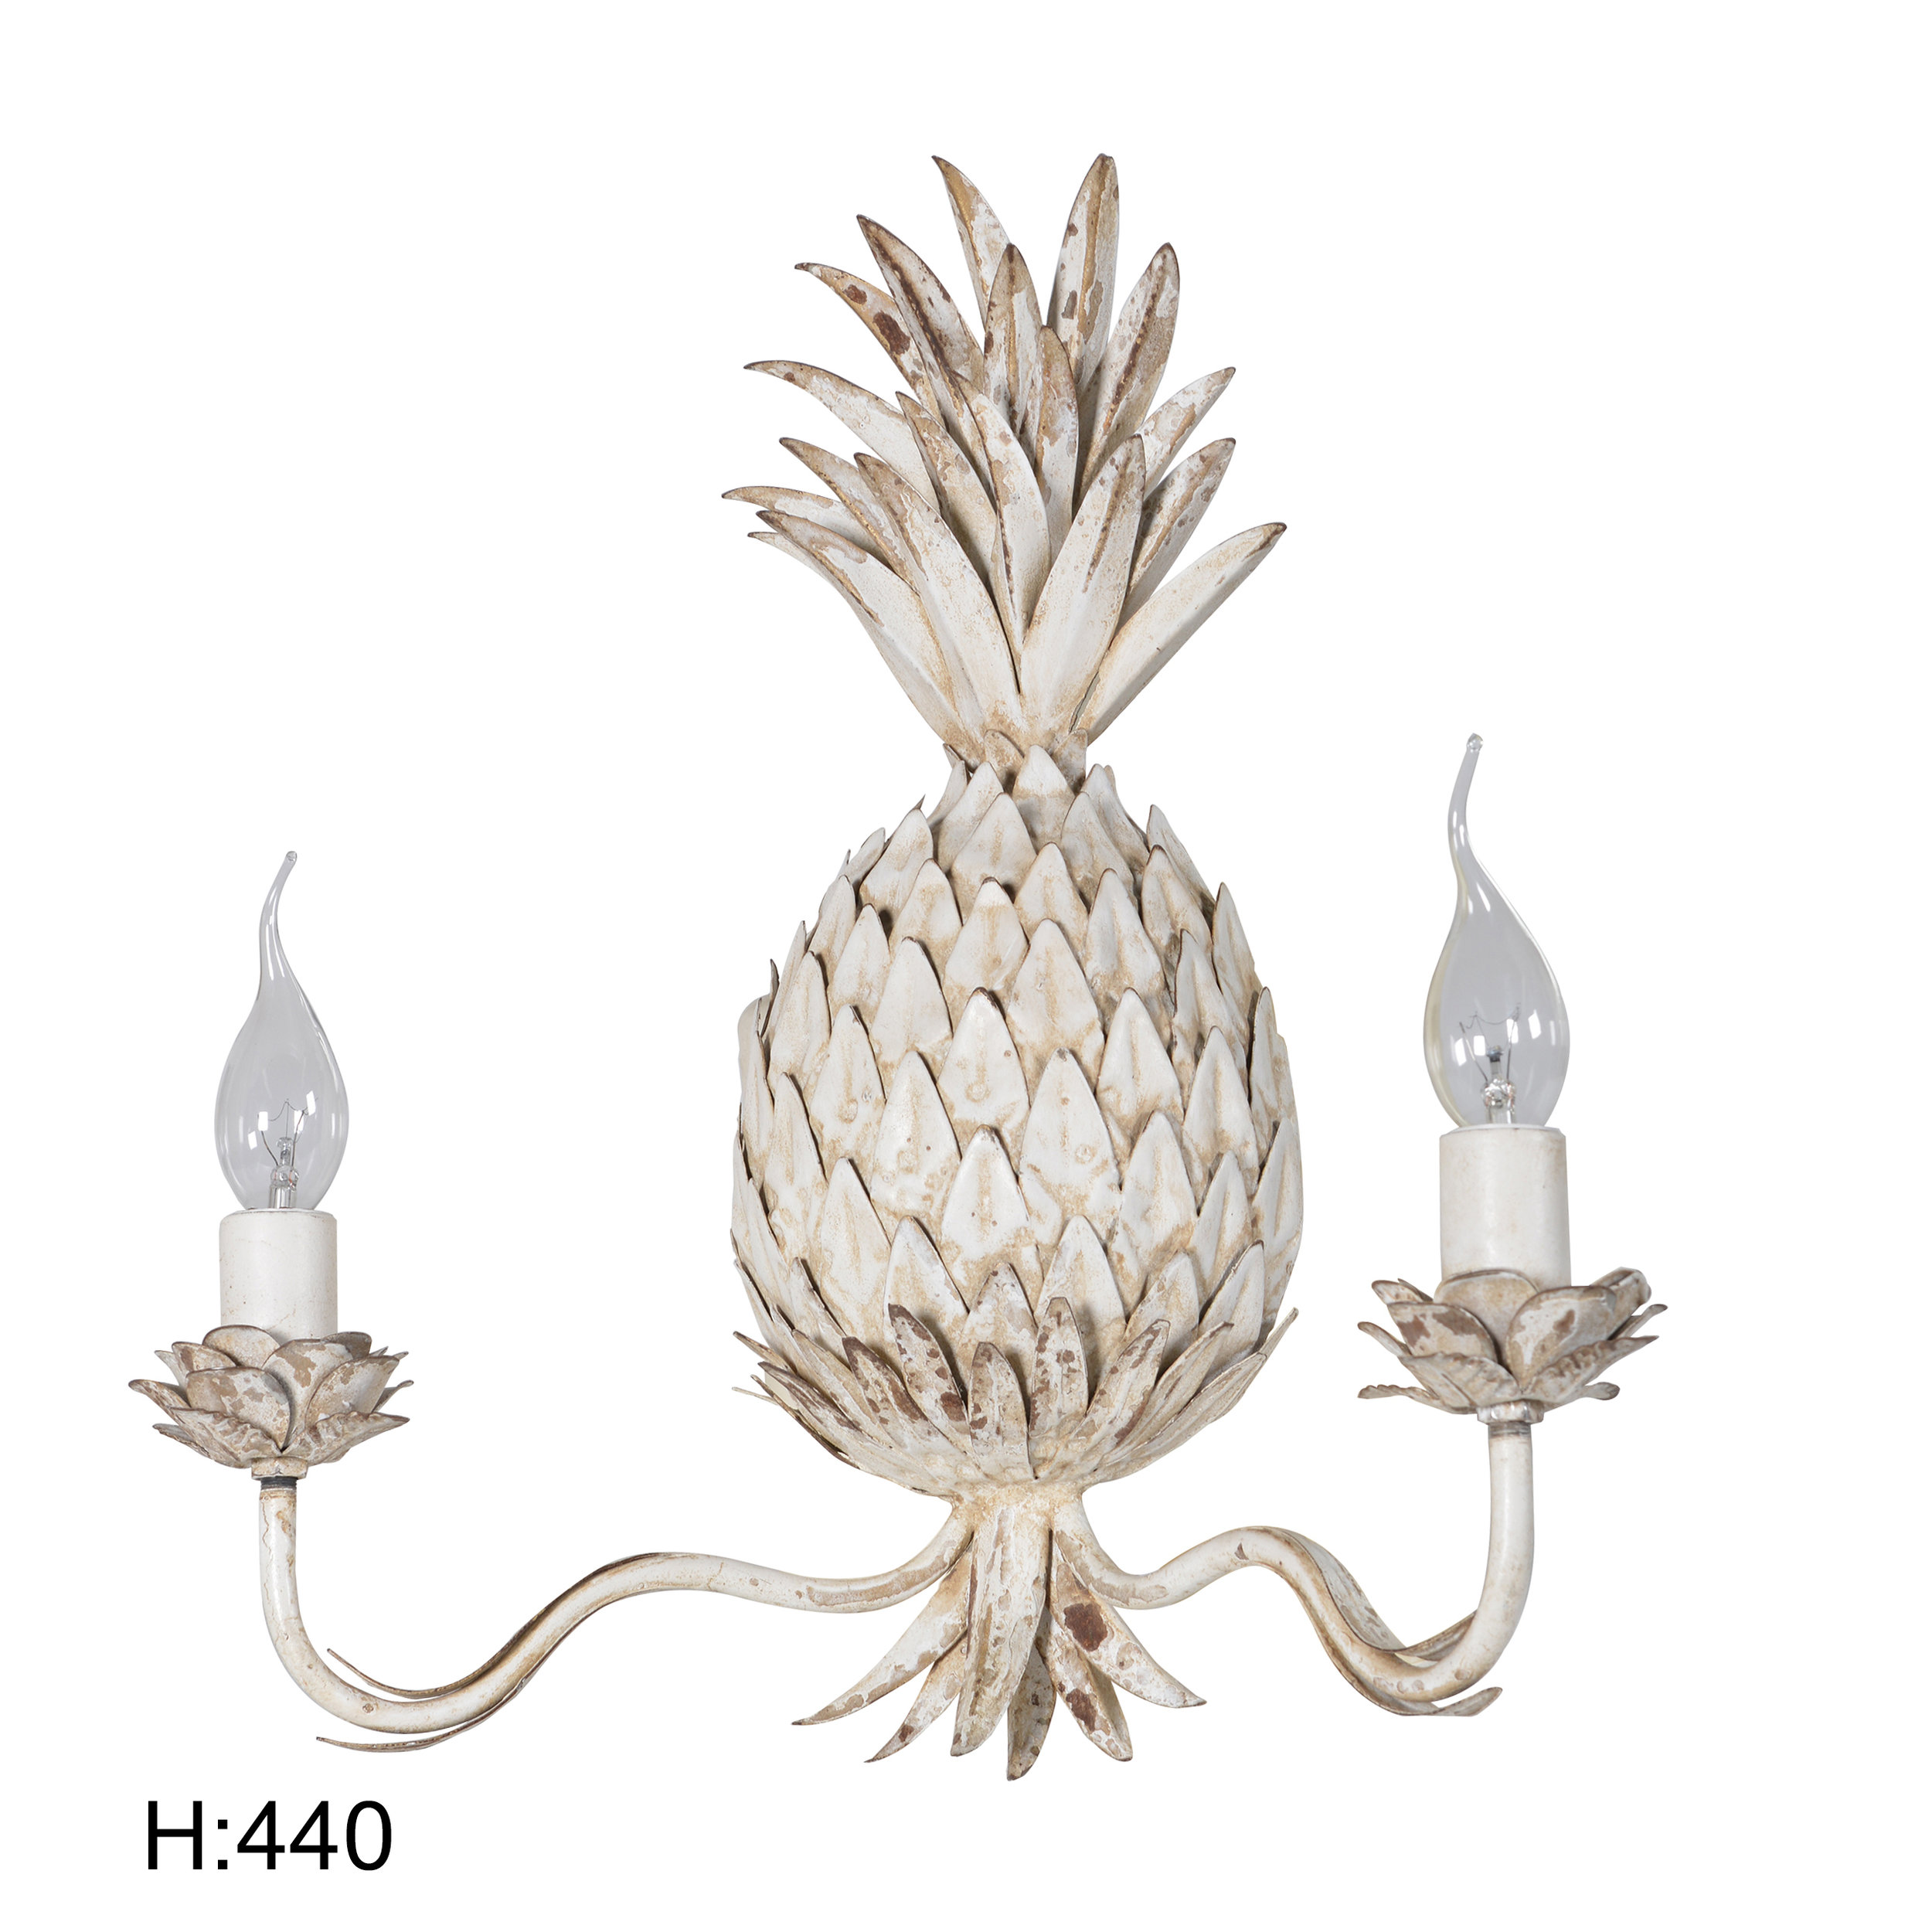 Pineapple Wall Lights.jpg